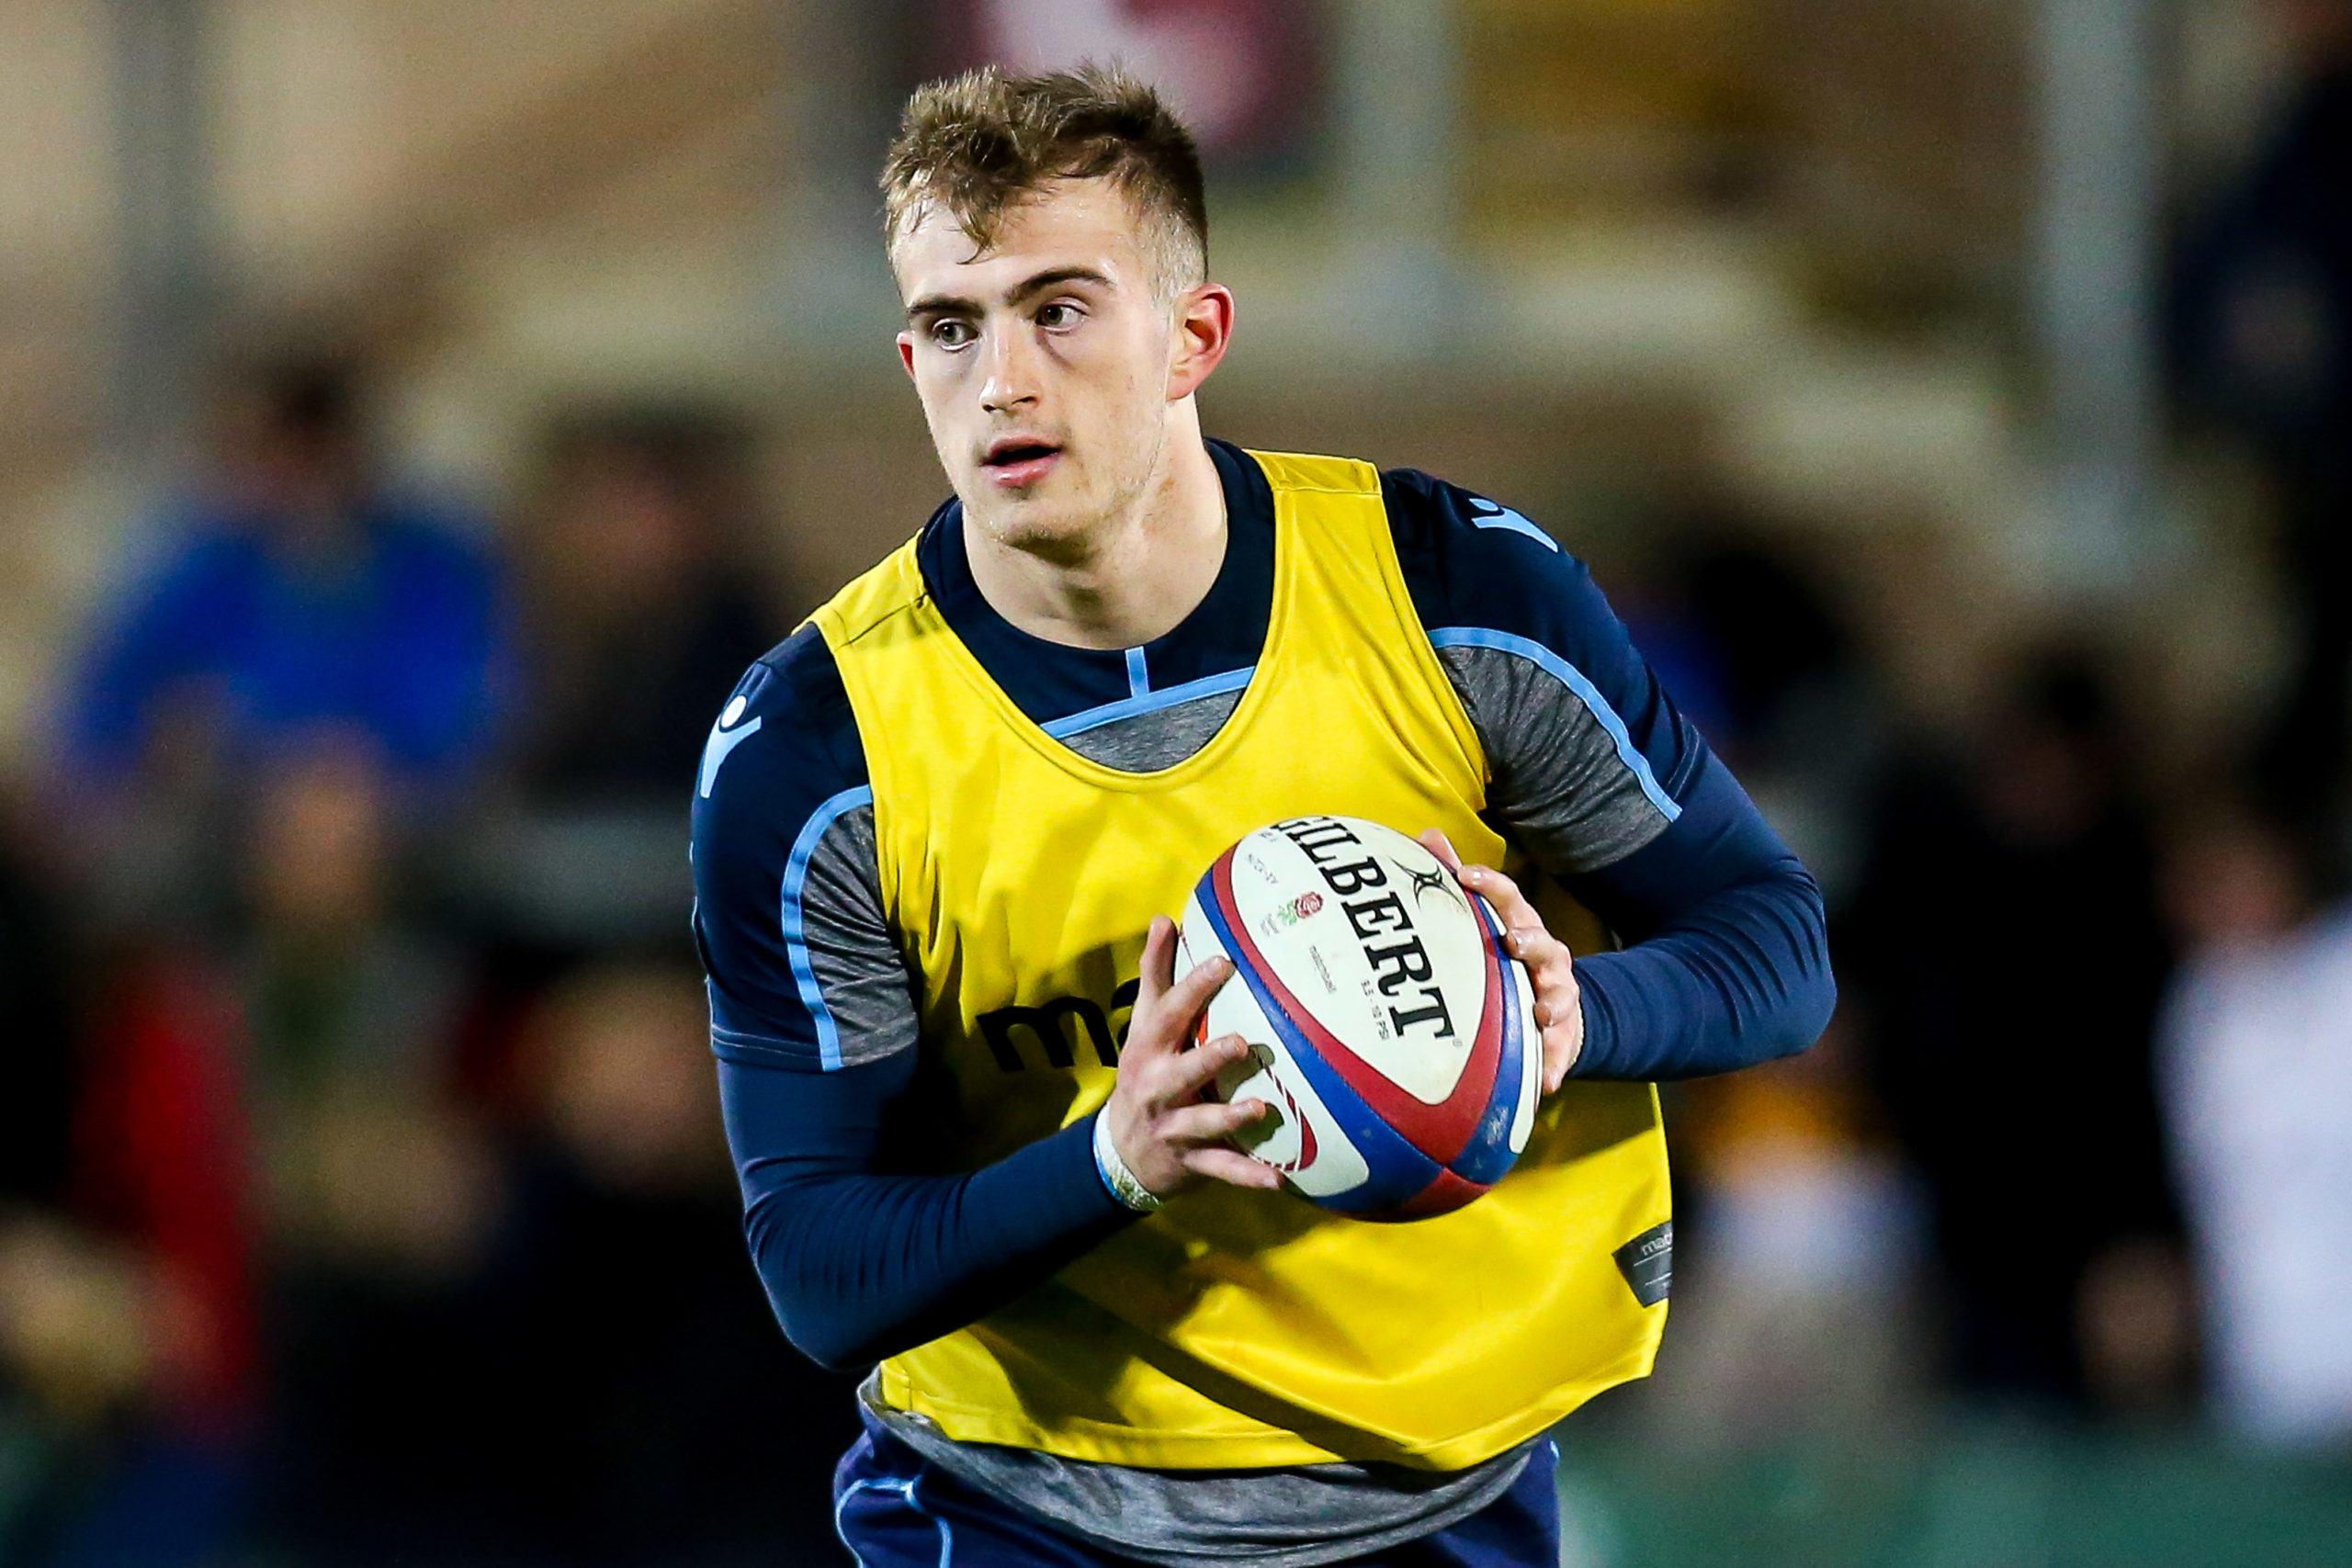 Edinburgh and Scotland U20 stand-off Nathan Chamberlain.